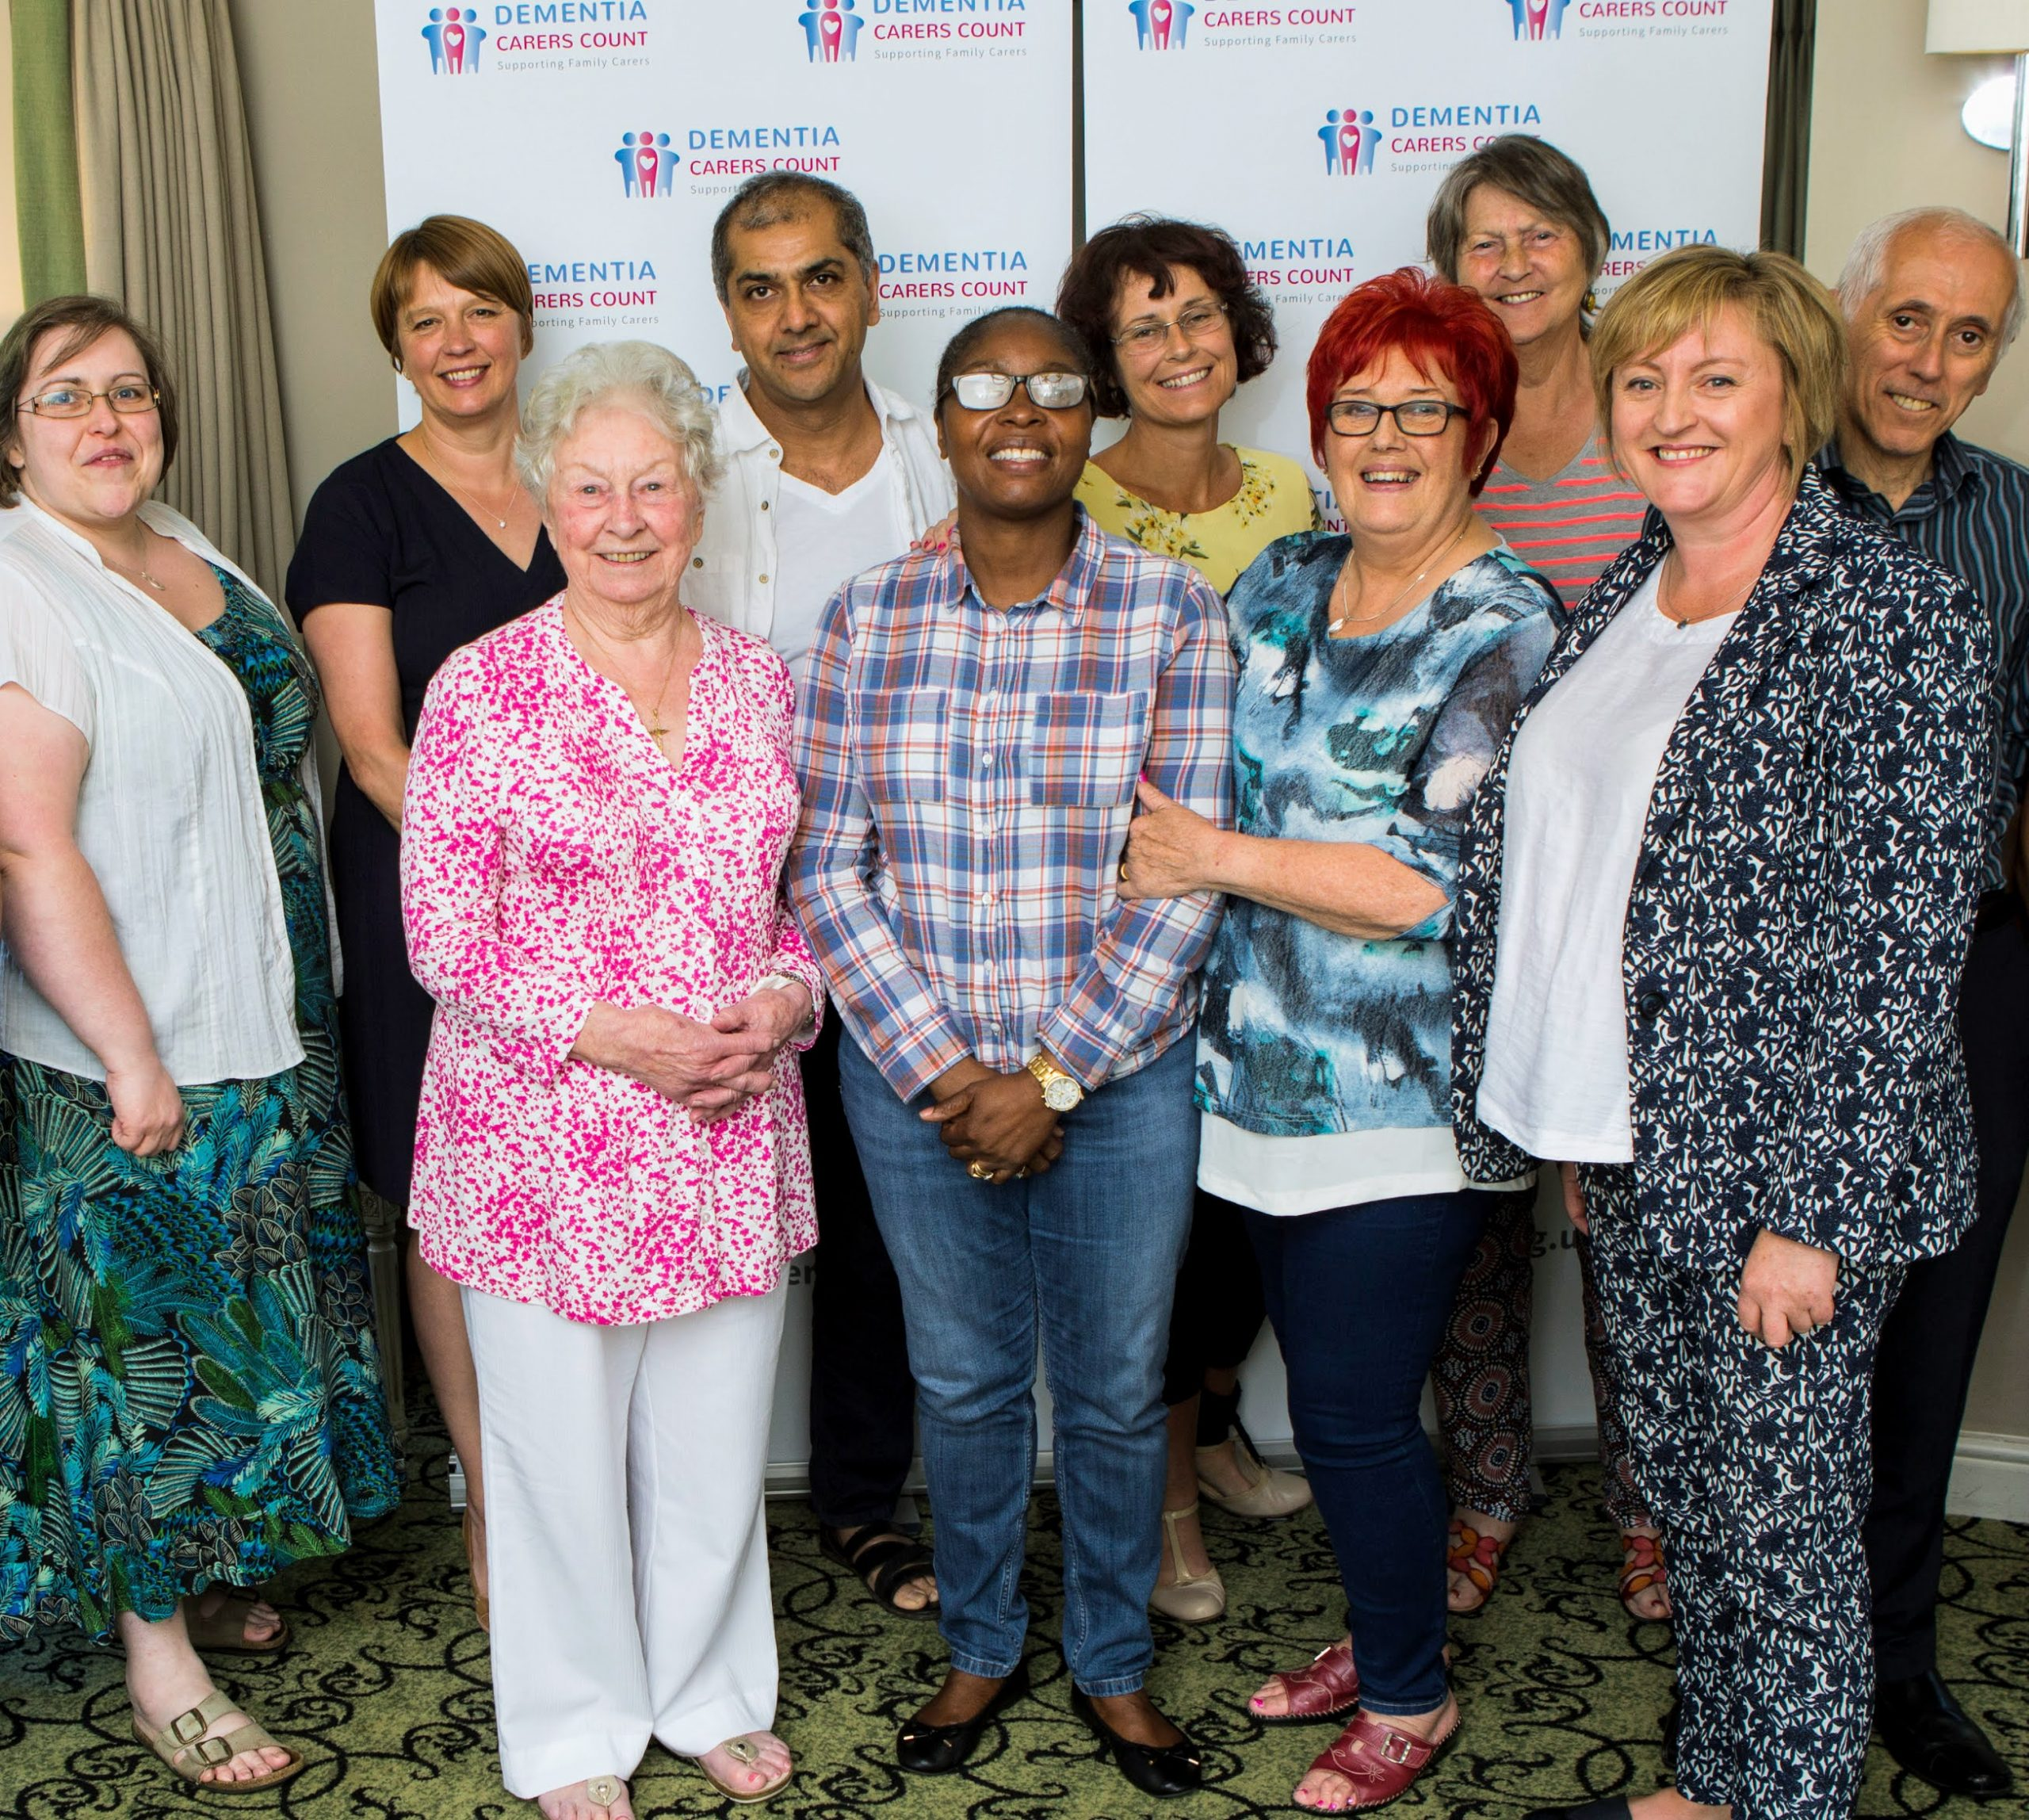 The Dementia Carers Count staff and carers.